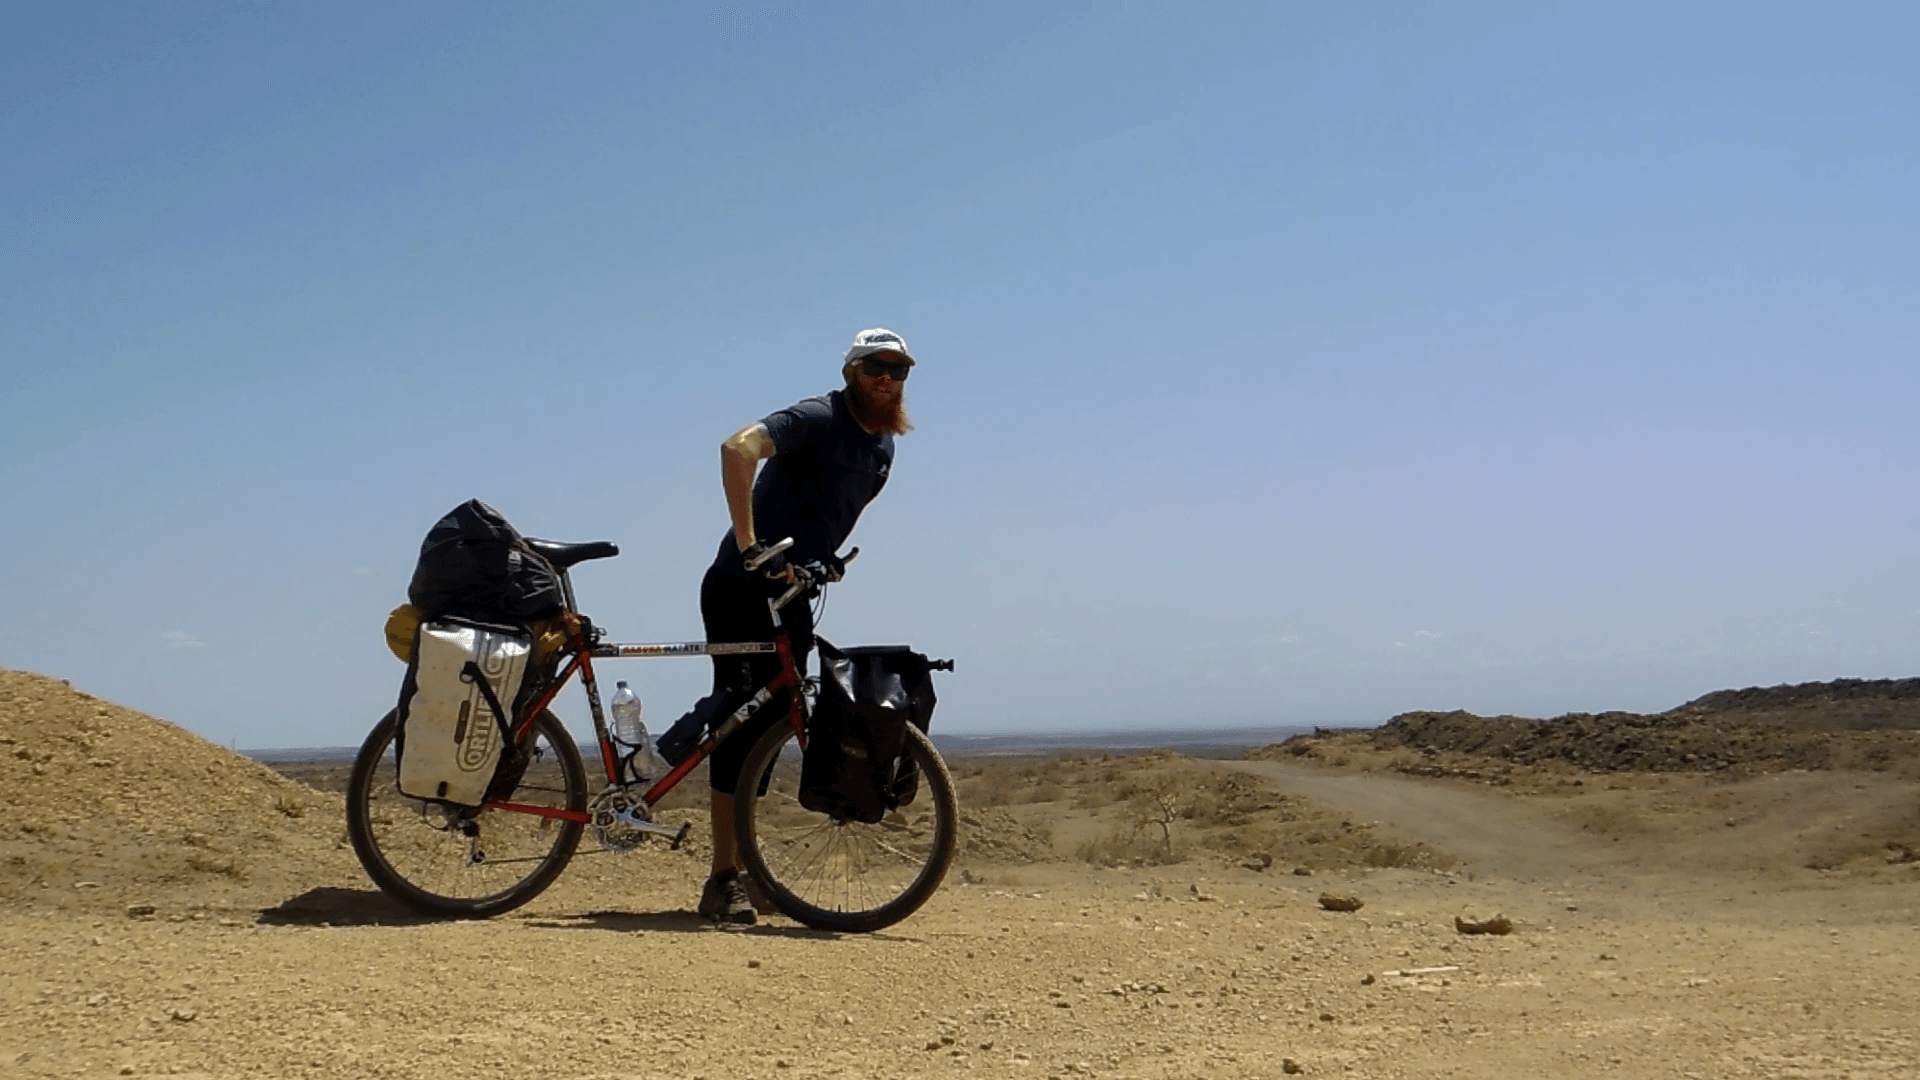 Cycle Across Africa - One Year From Cape Town to Cairo